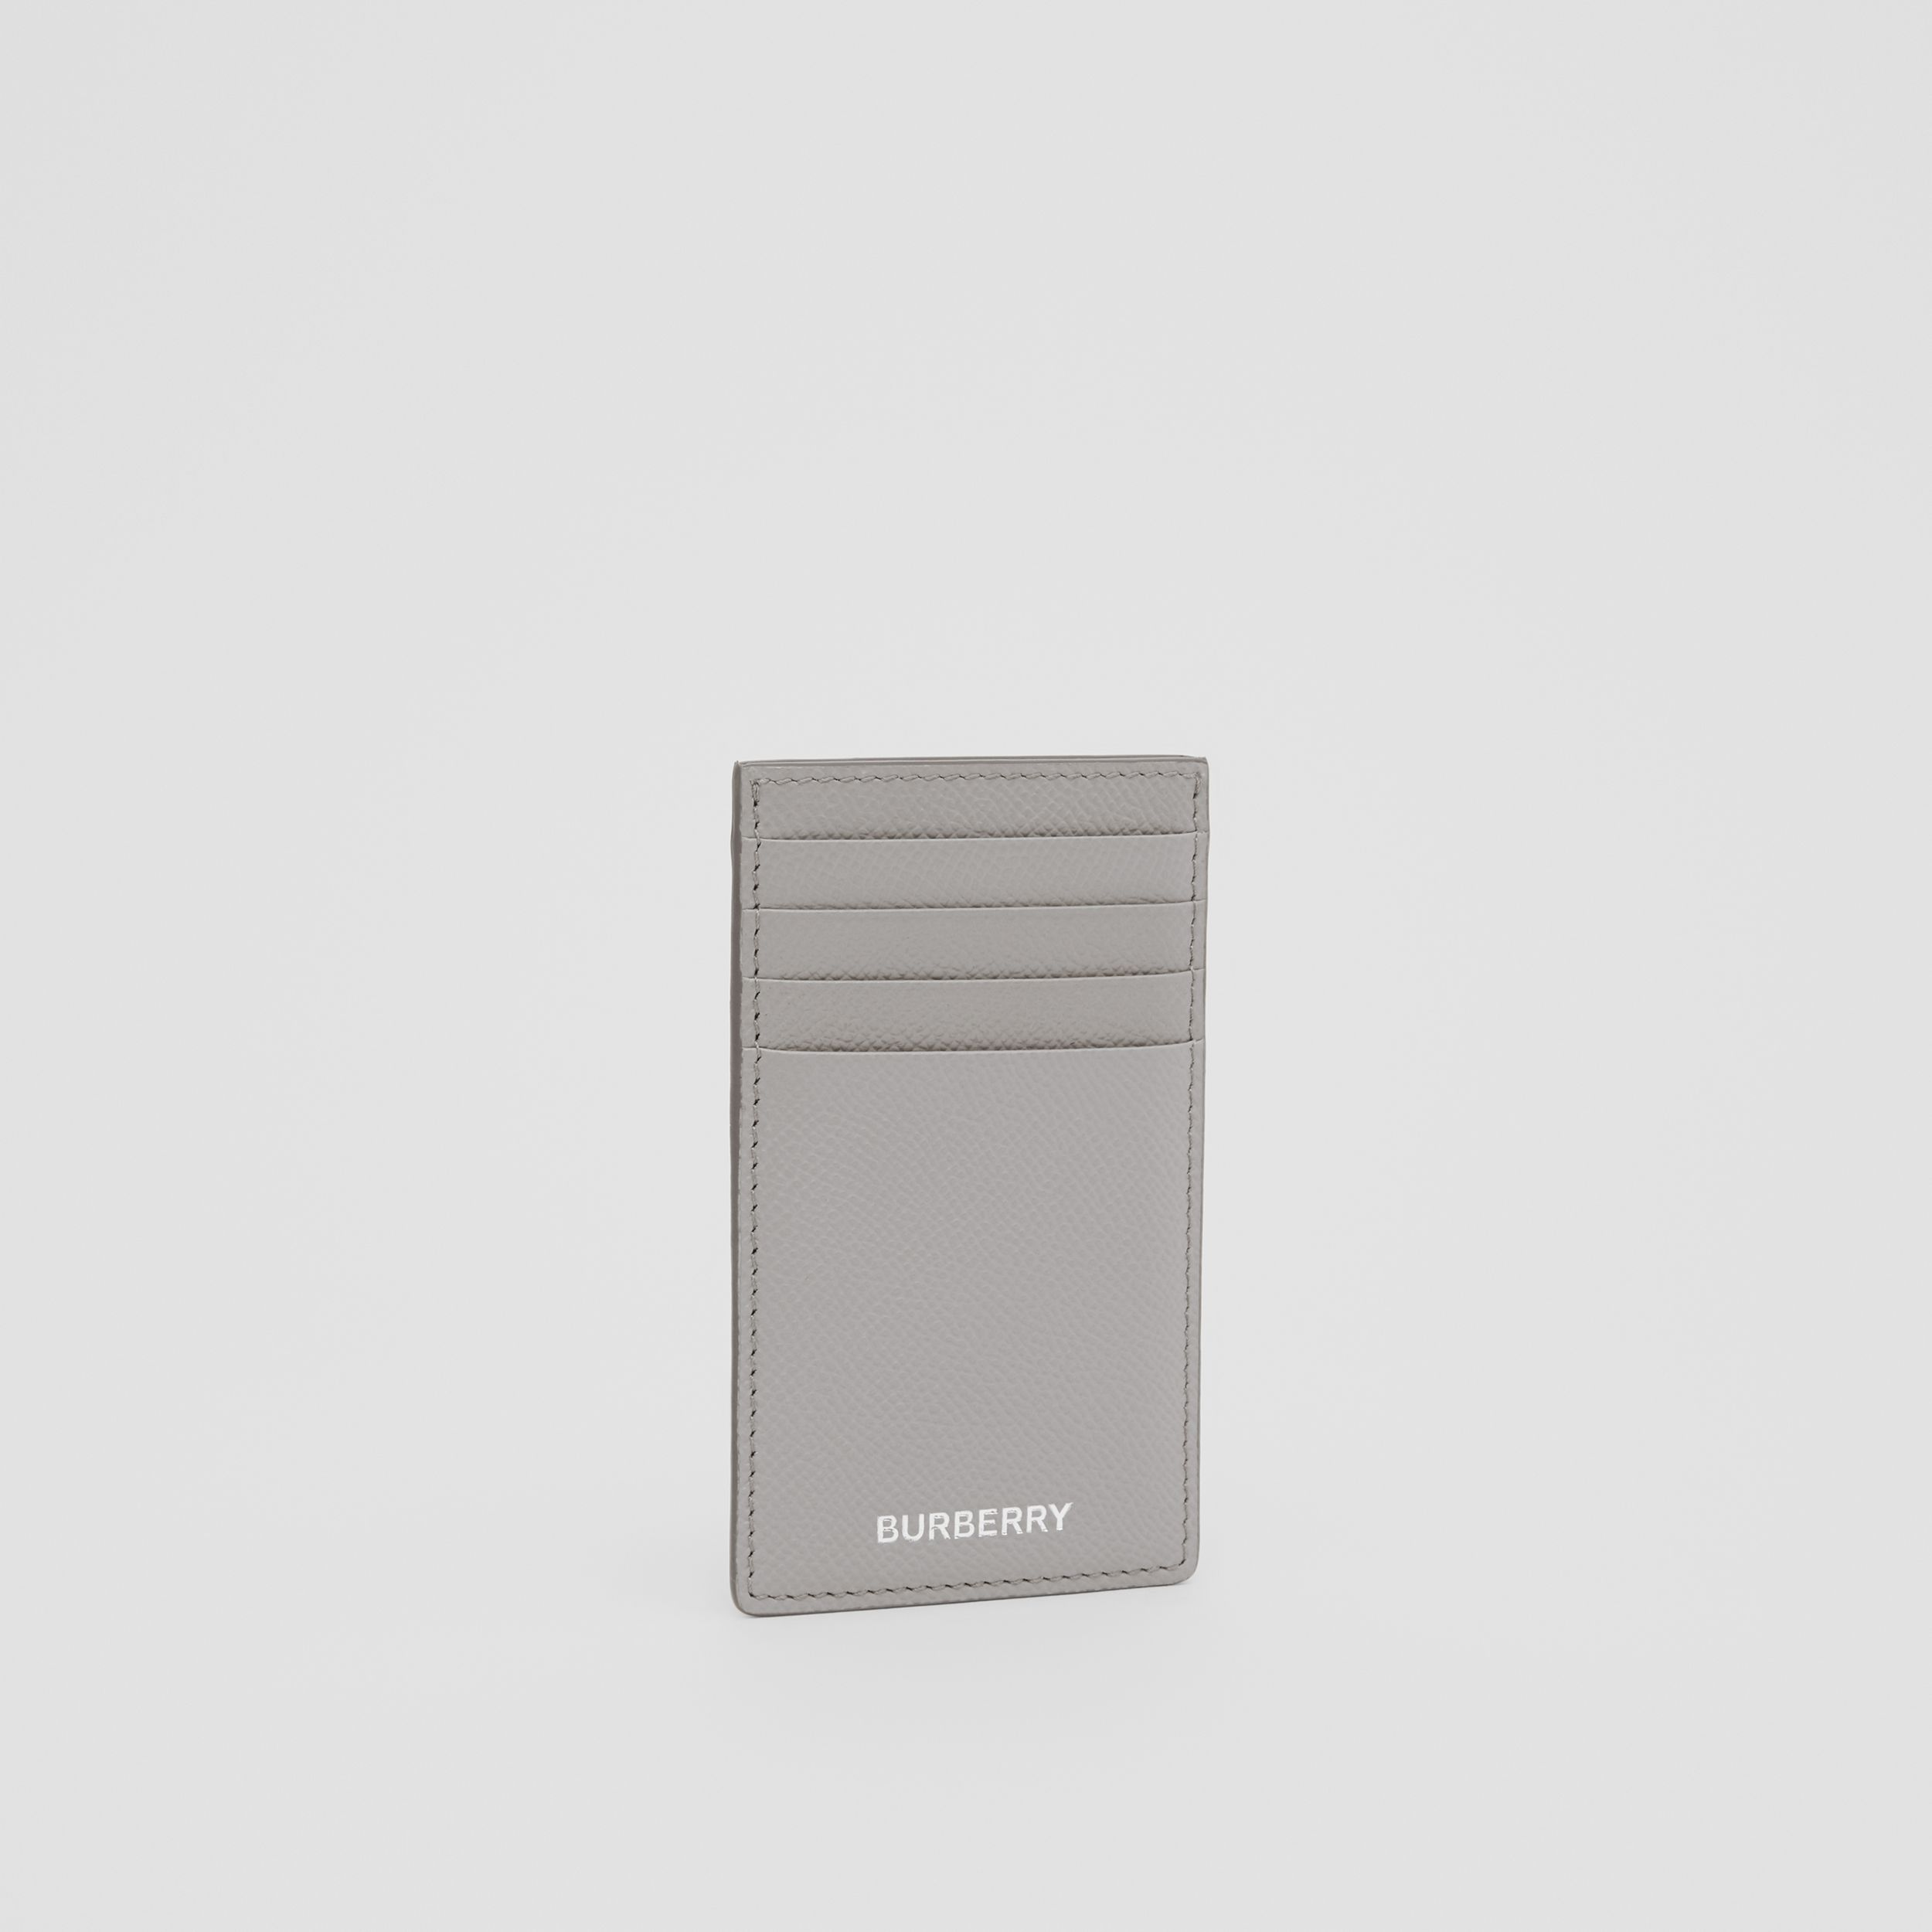 Grainy Leather Card Case in Cloud Grey - Men | Burberry - 4